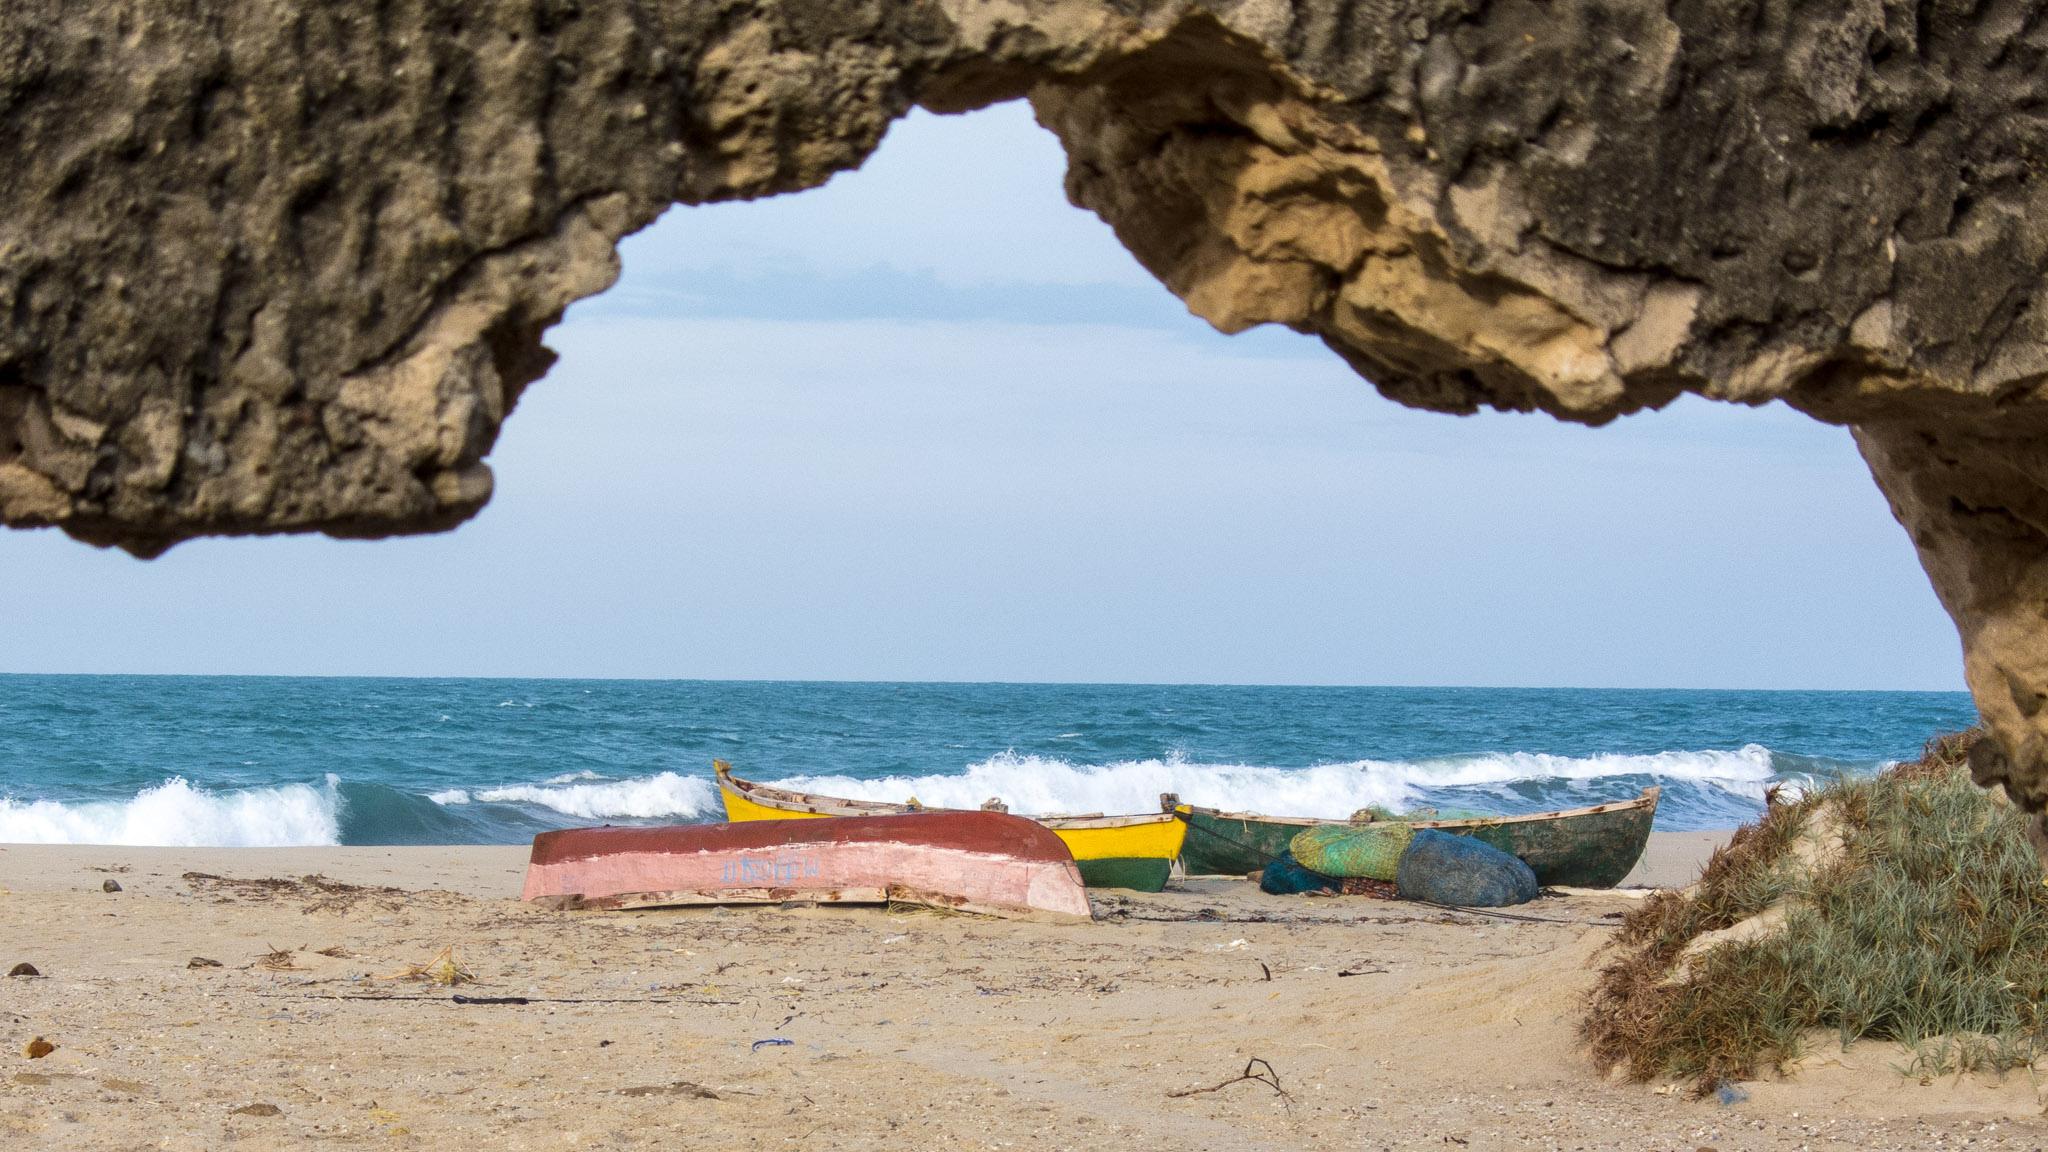 Fishing boats at Dhanushkodi, Tamil Nadu. Credit: mikeprince/Flickr, CC BY 2.0